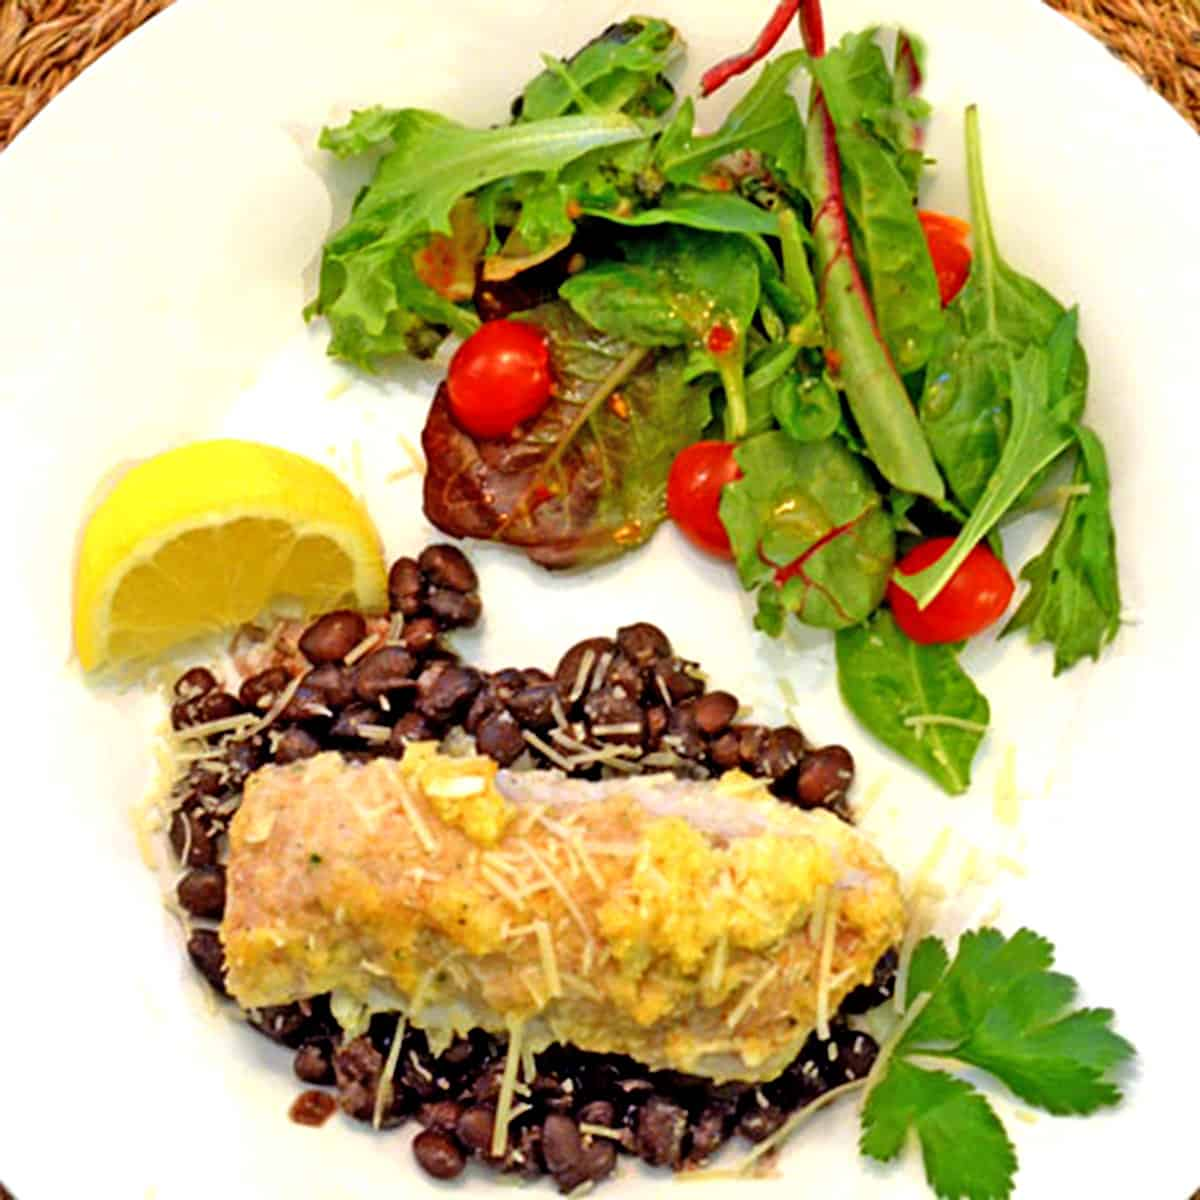 A dinner plate with fish over black beans and a salad.